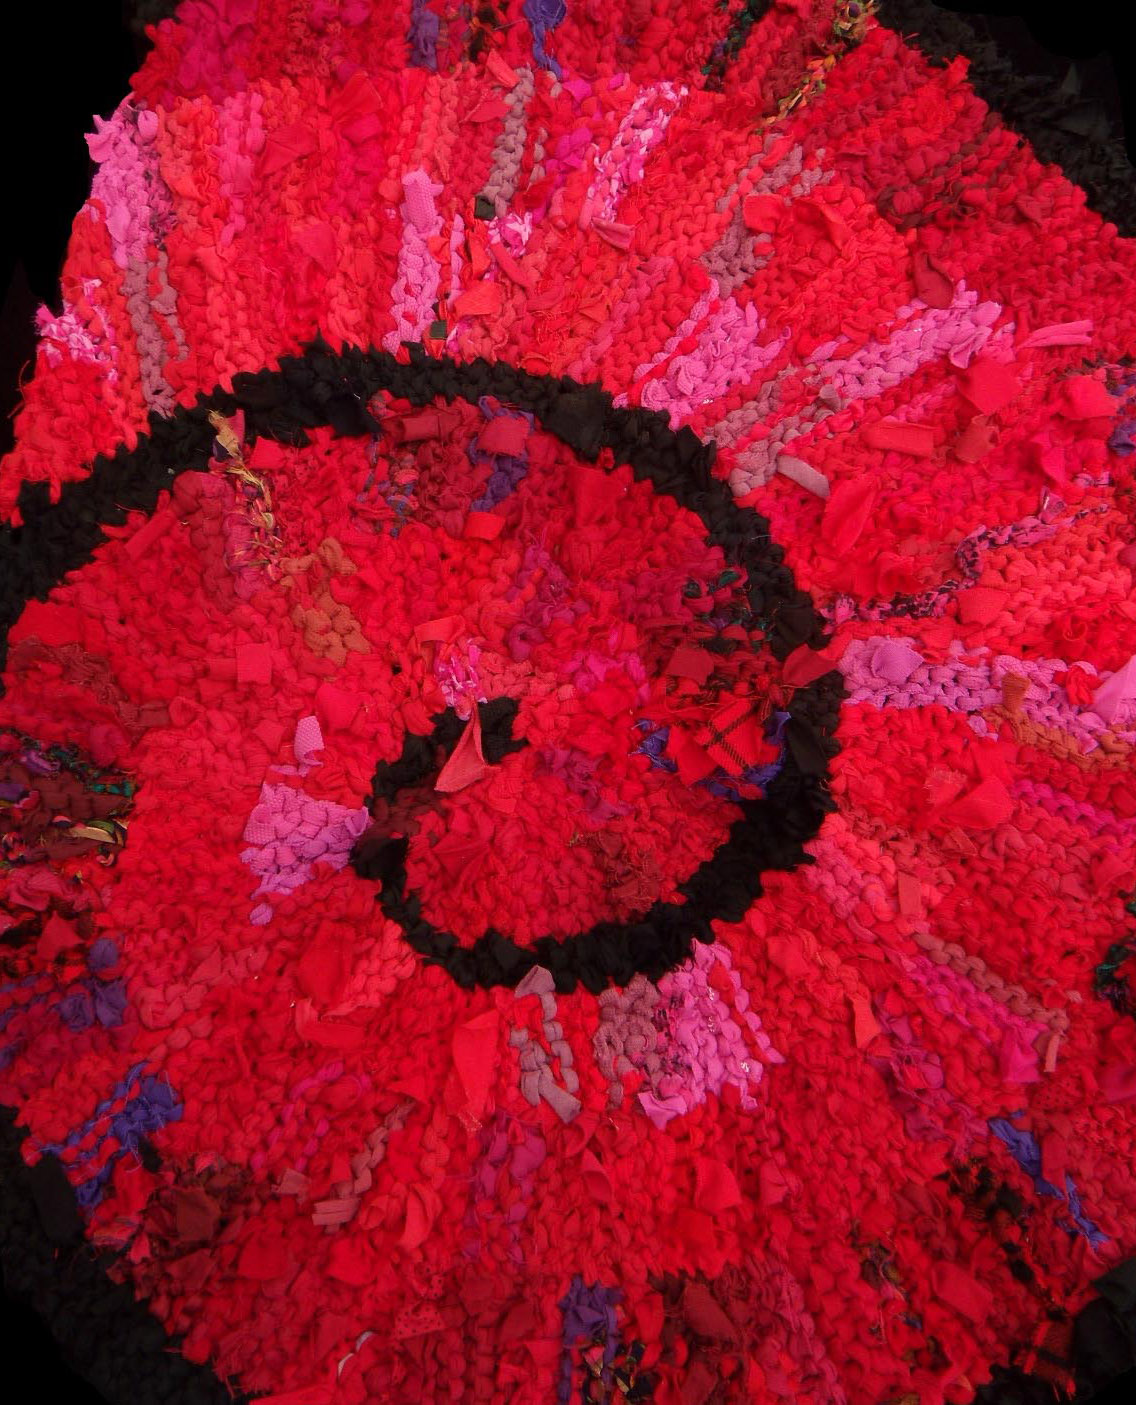 Red Nautilus hand knit rag rug section. $960. See this and more at www.rugsfromrags.com/shop